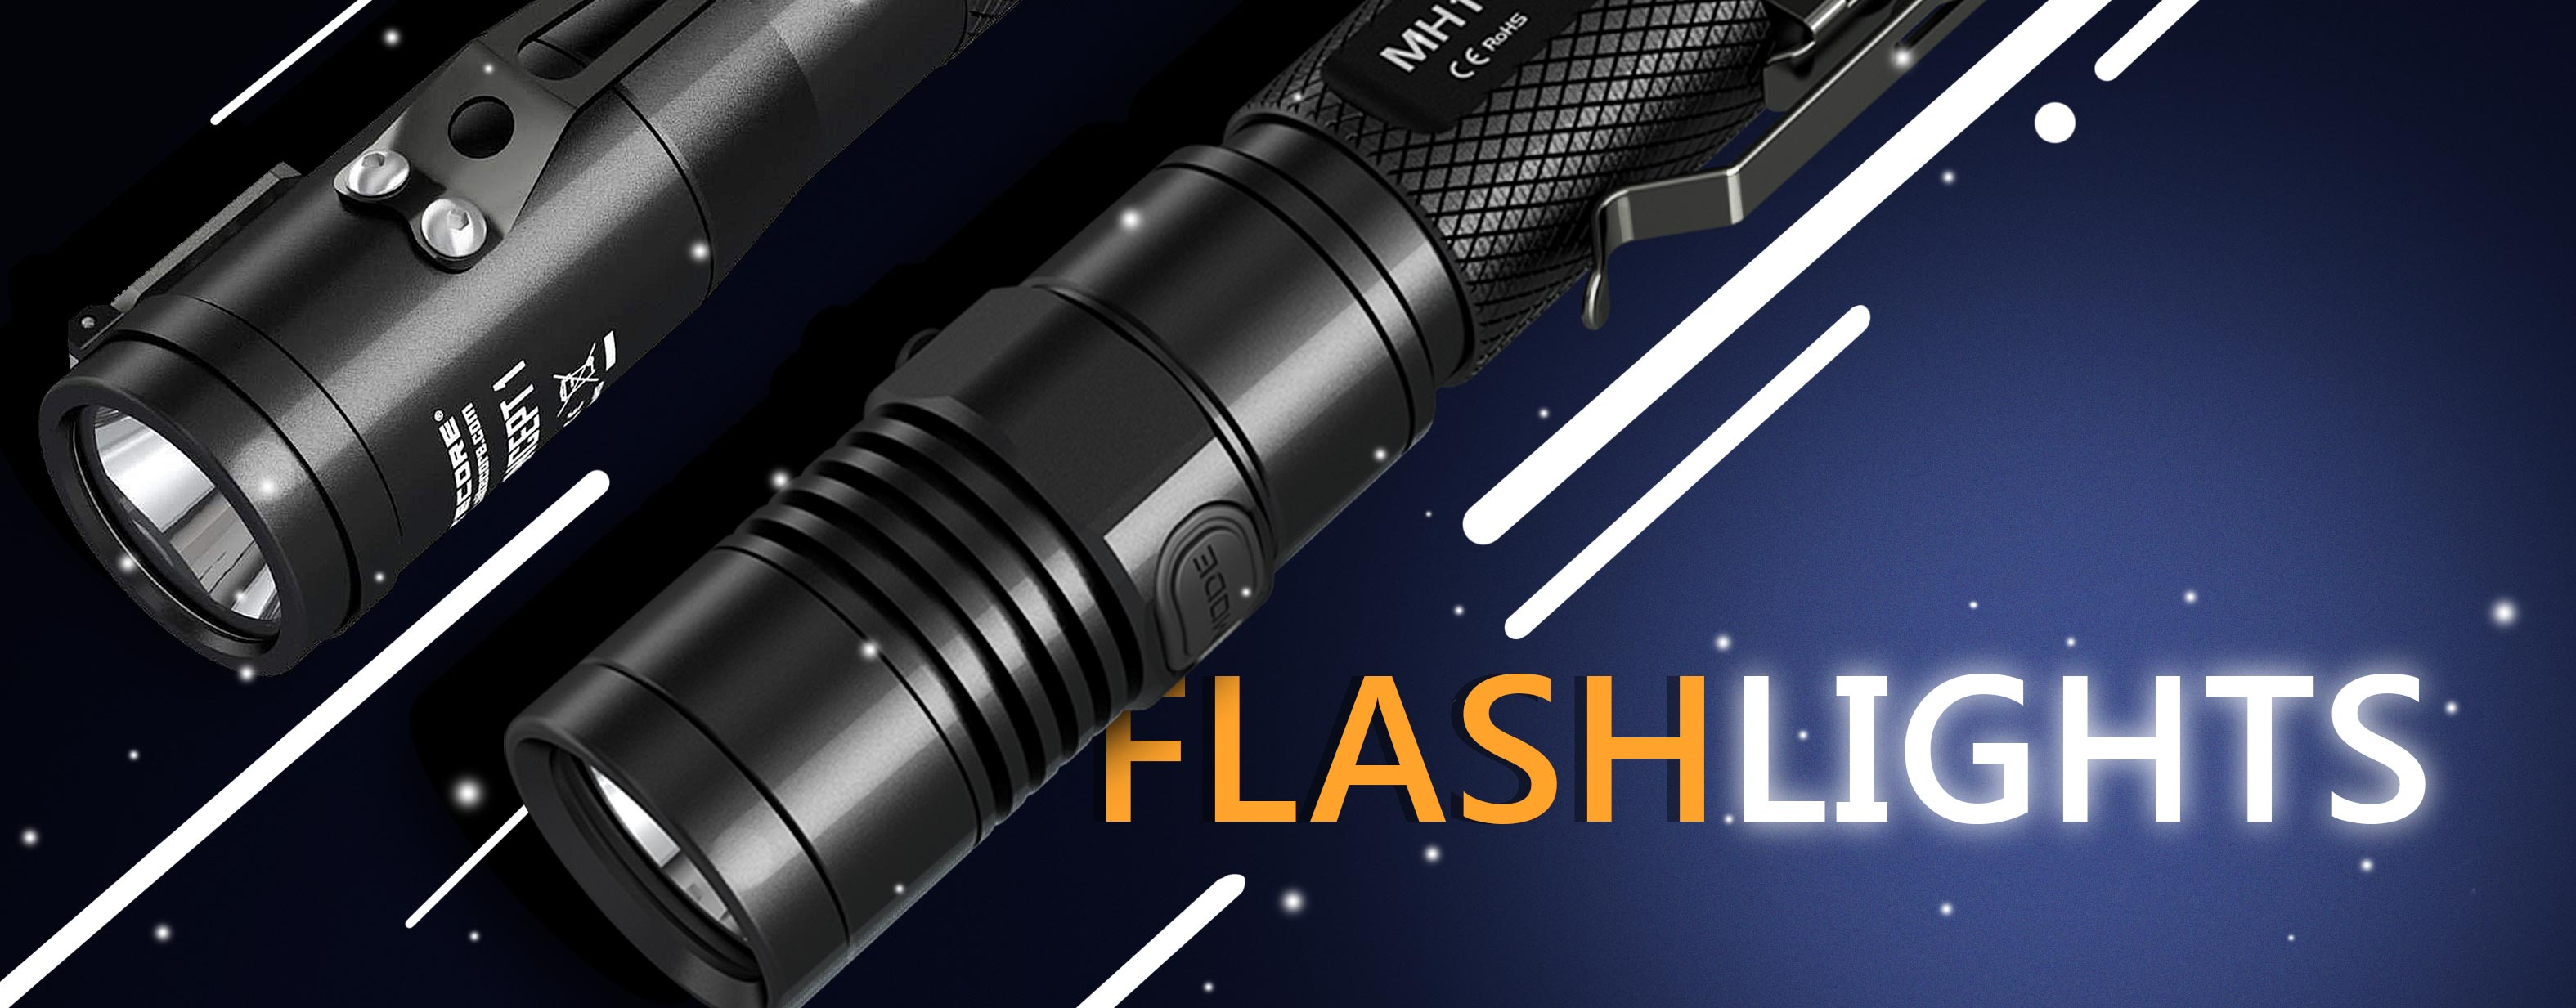 handheld-flashlights-756-.jpg